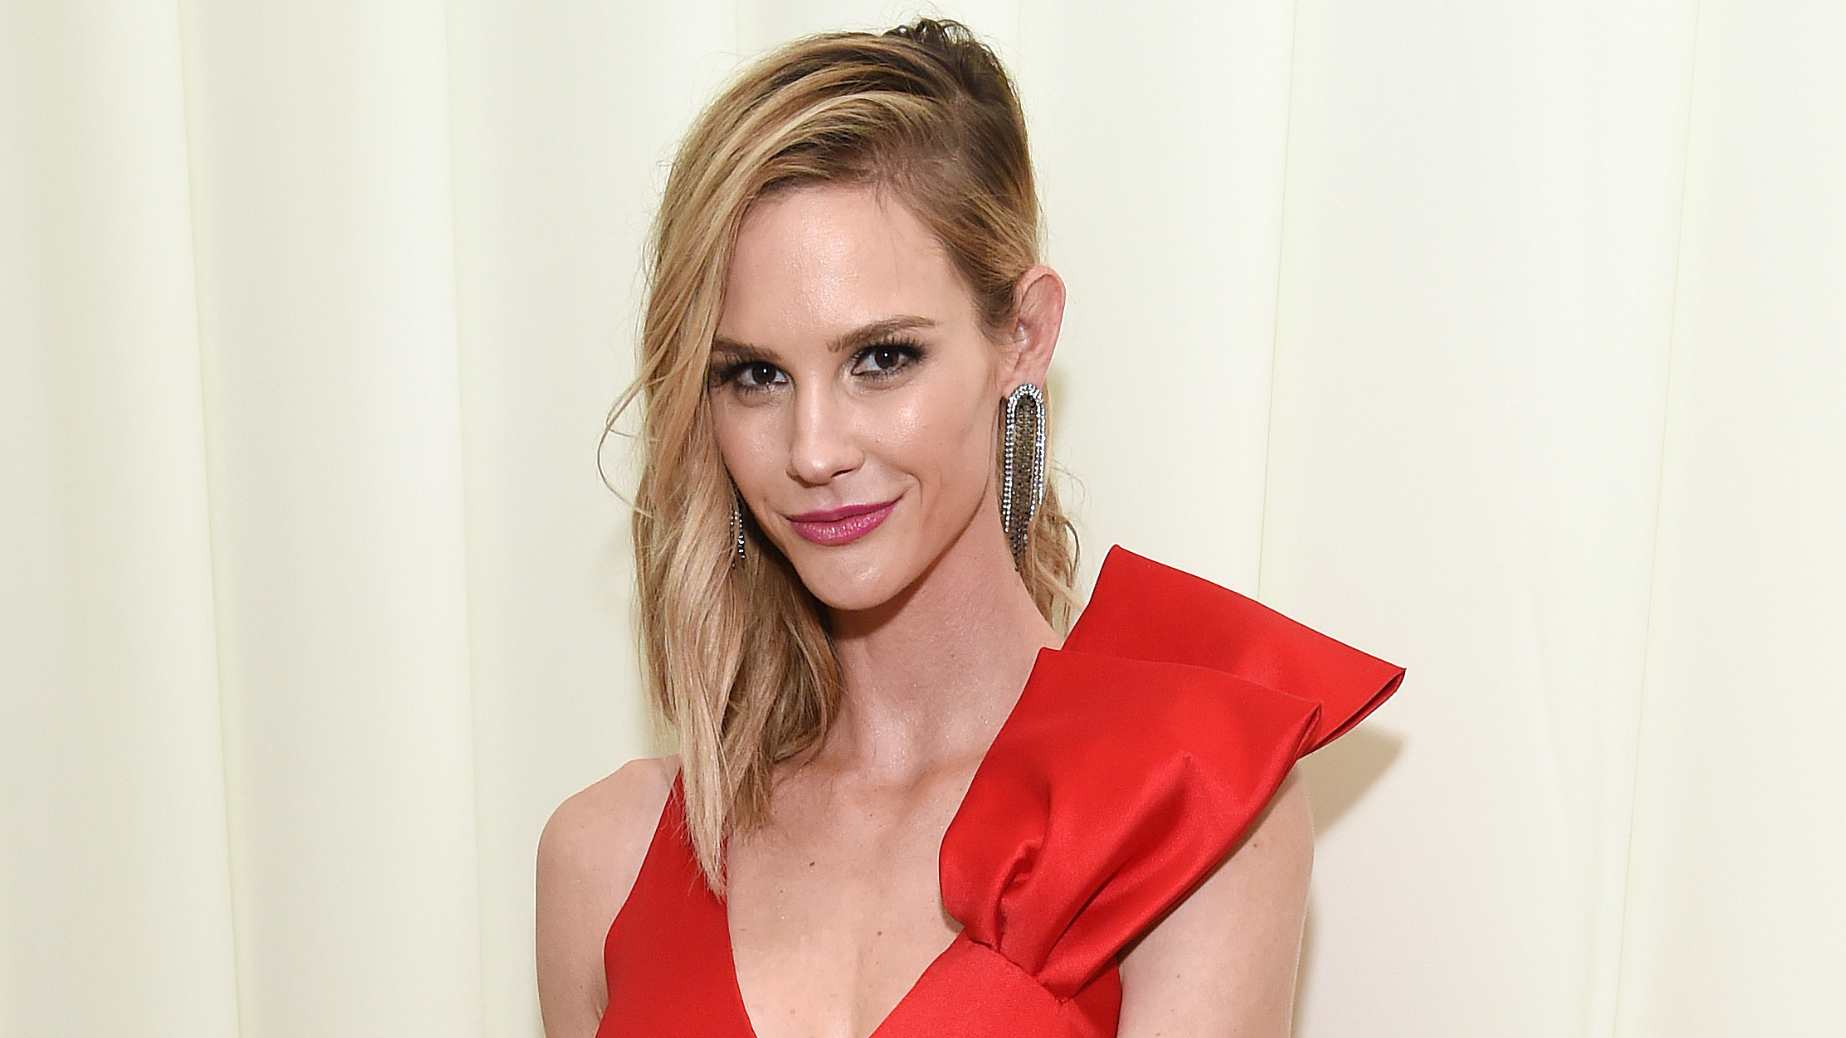 Meghan King Edmonds attends the 28th Annual Elton John AIDS Foundation Academy Awards Viewing Party sponsored by IMDb, Neuro Drinks and Walmart on February 09, 2020 in West Hollywood, California.